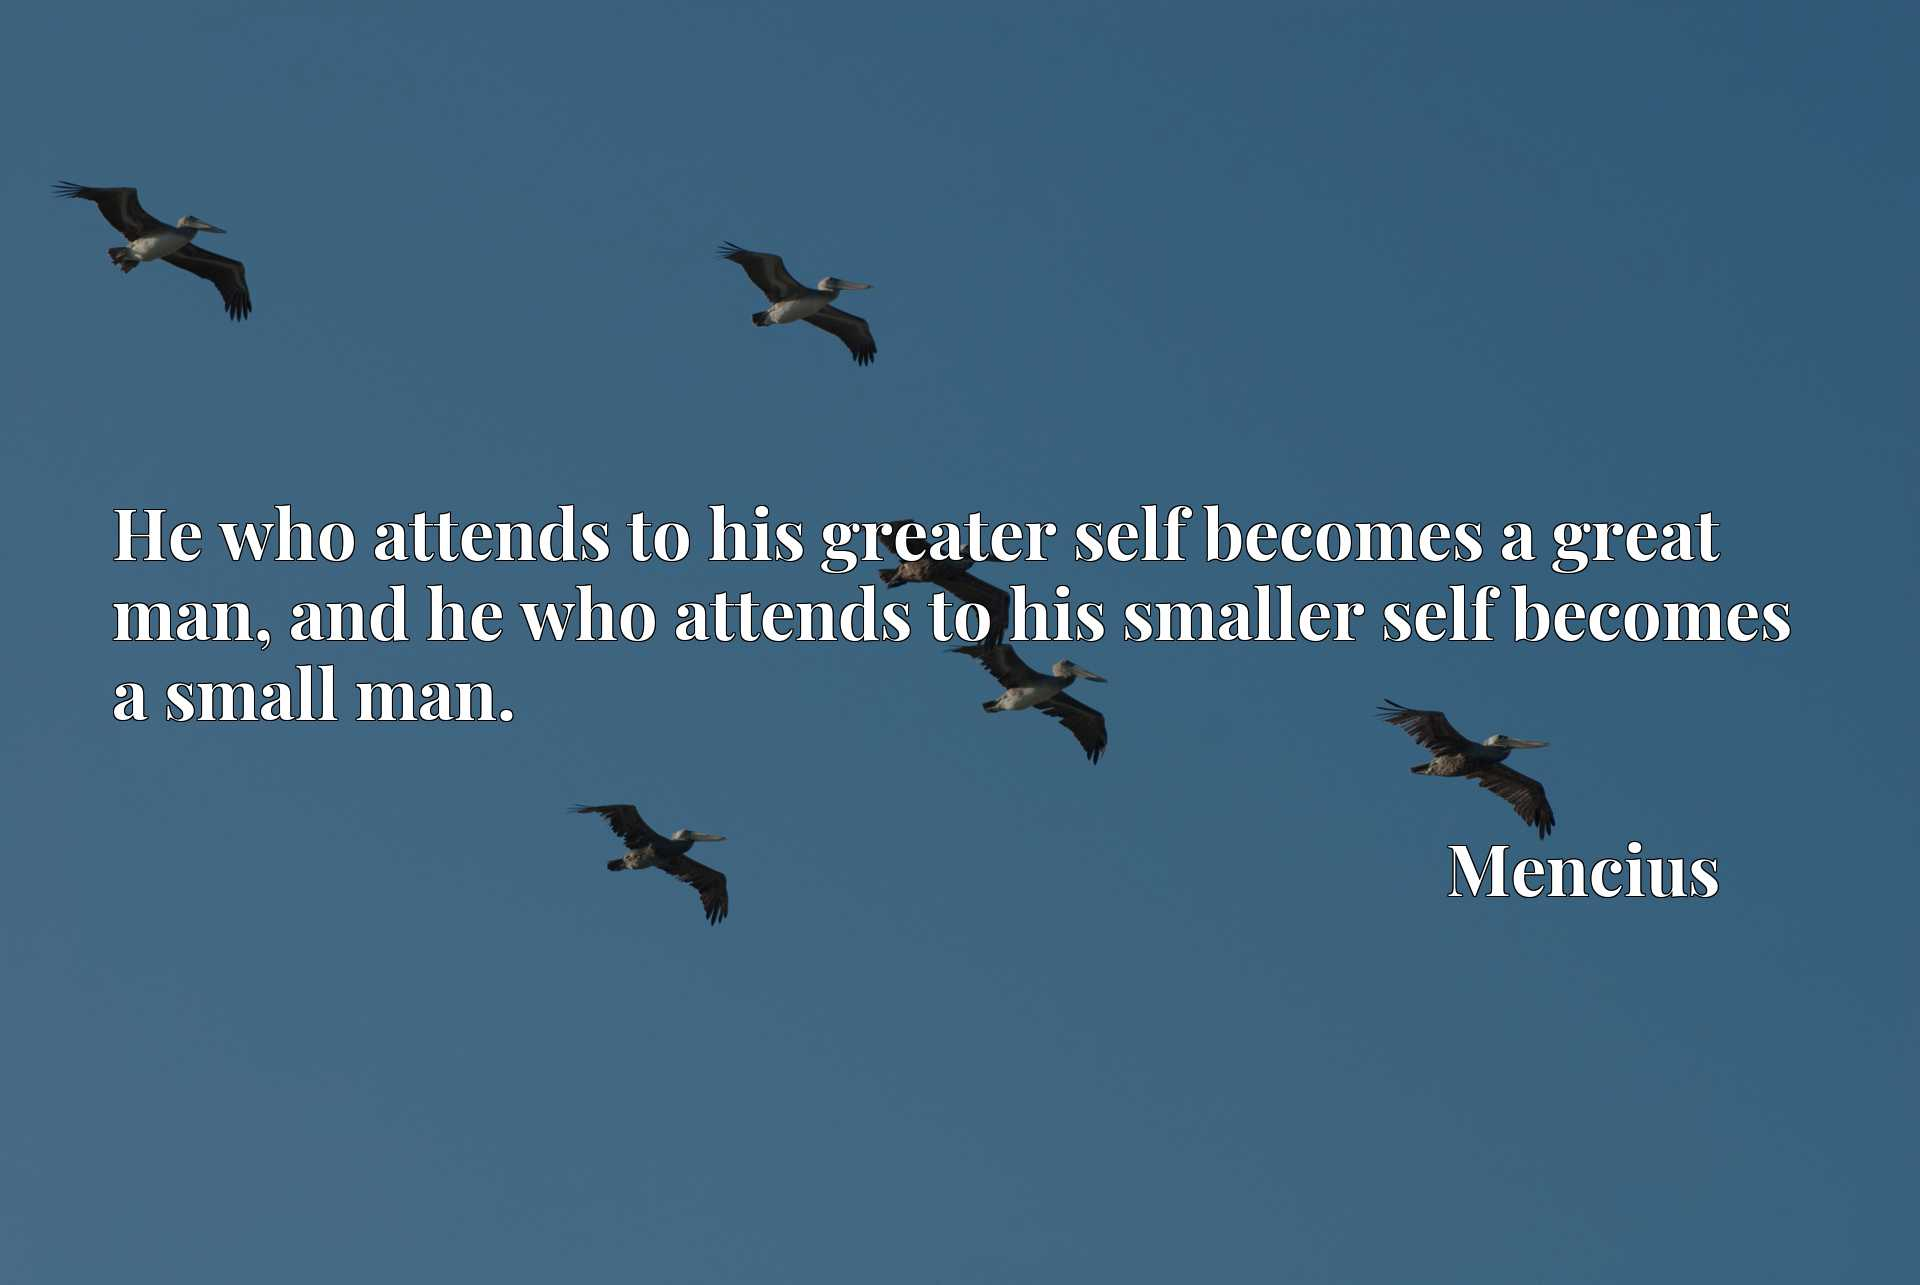 He who attends to his greater self becomes a great man, and he who attends to his smaller self becomes a small man.